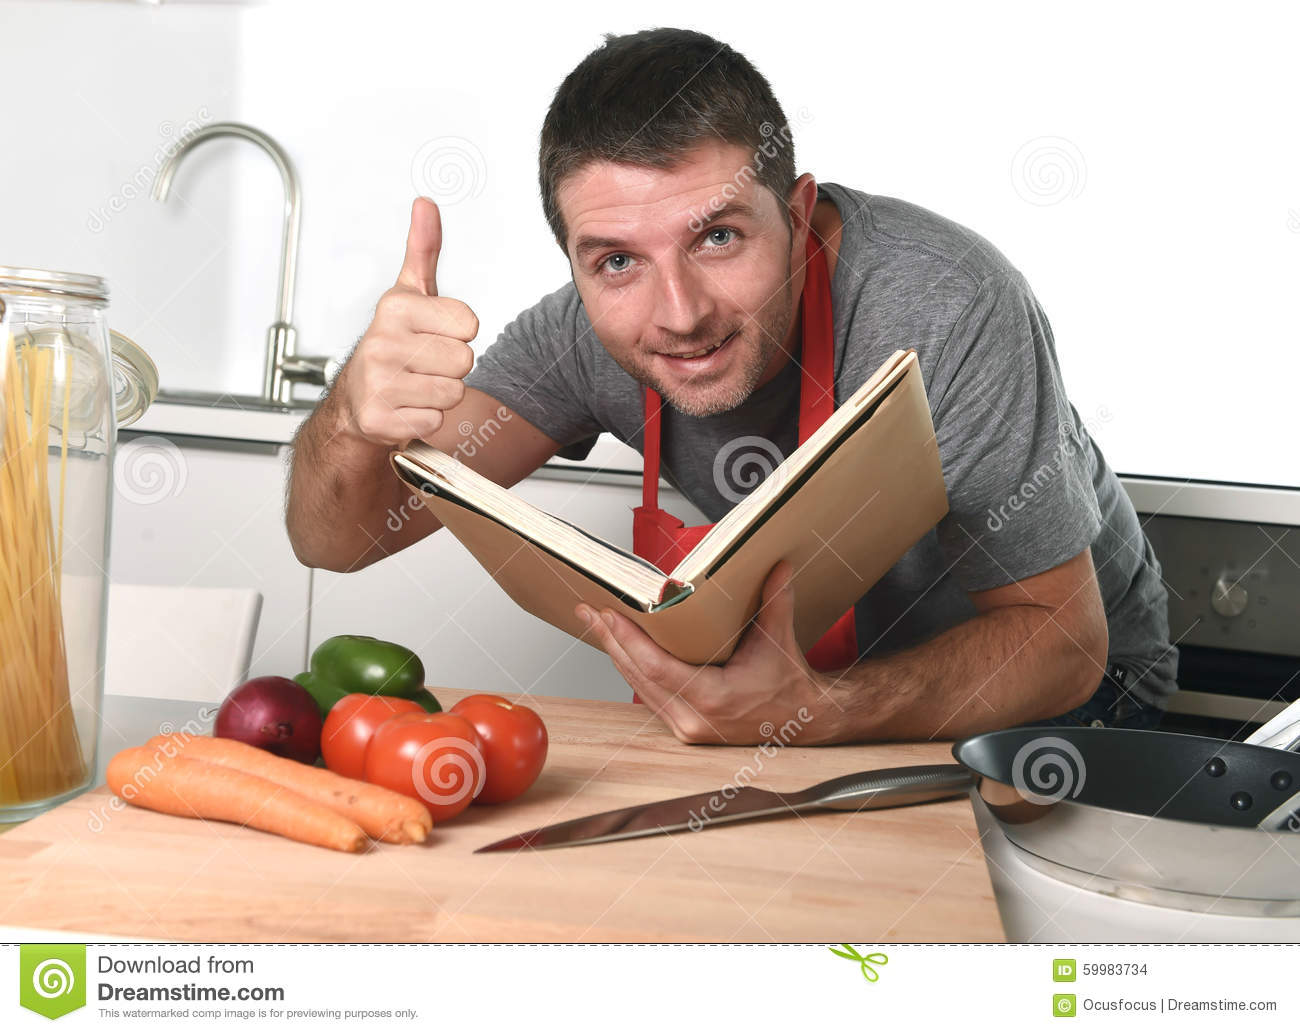 How to Learn Cooking by Yourself (with Pictures) - wikiHow